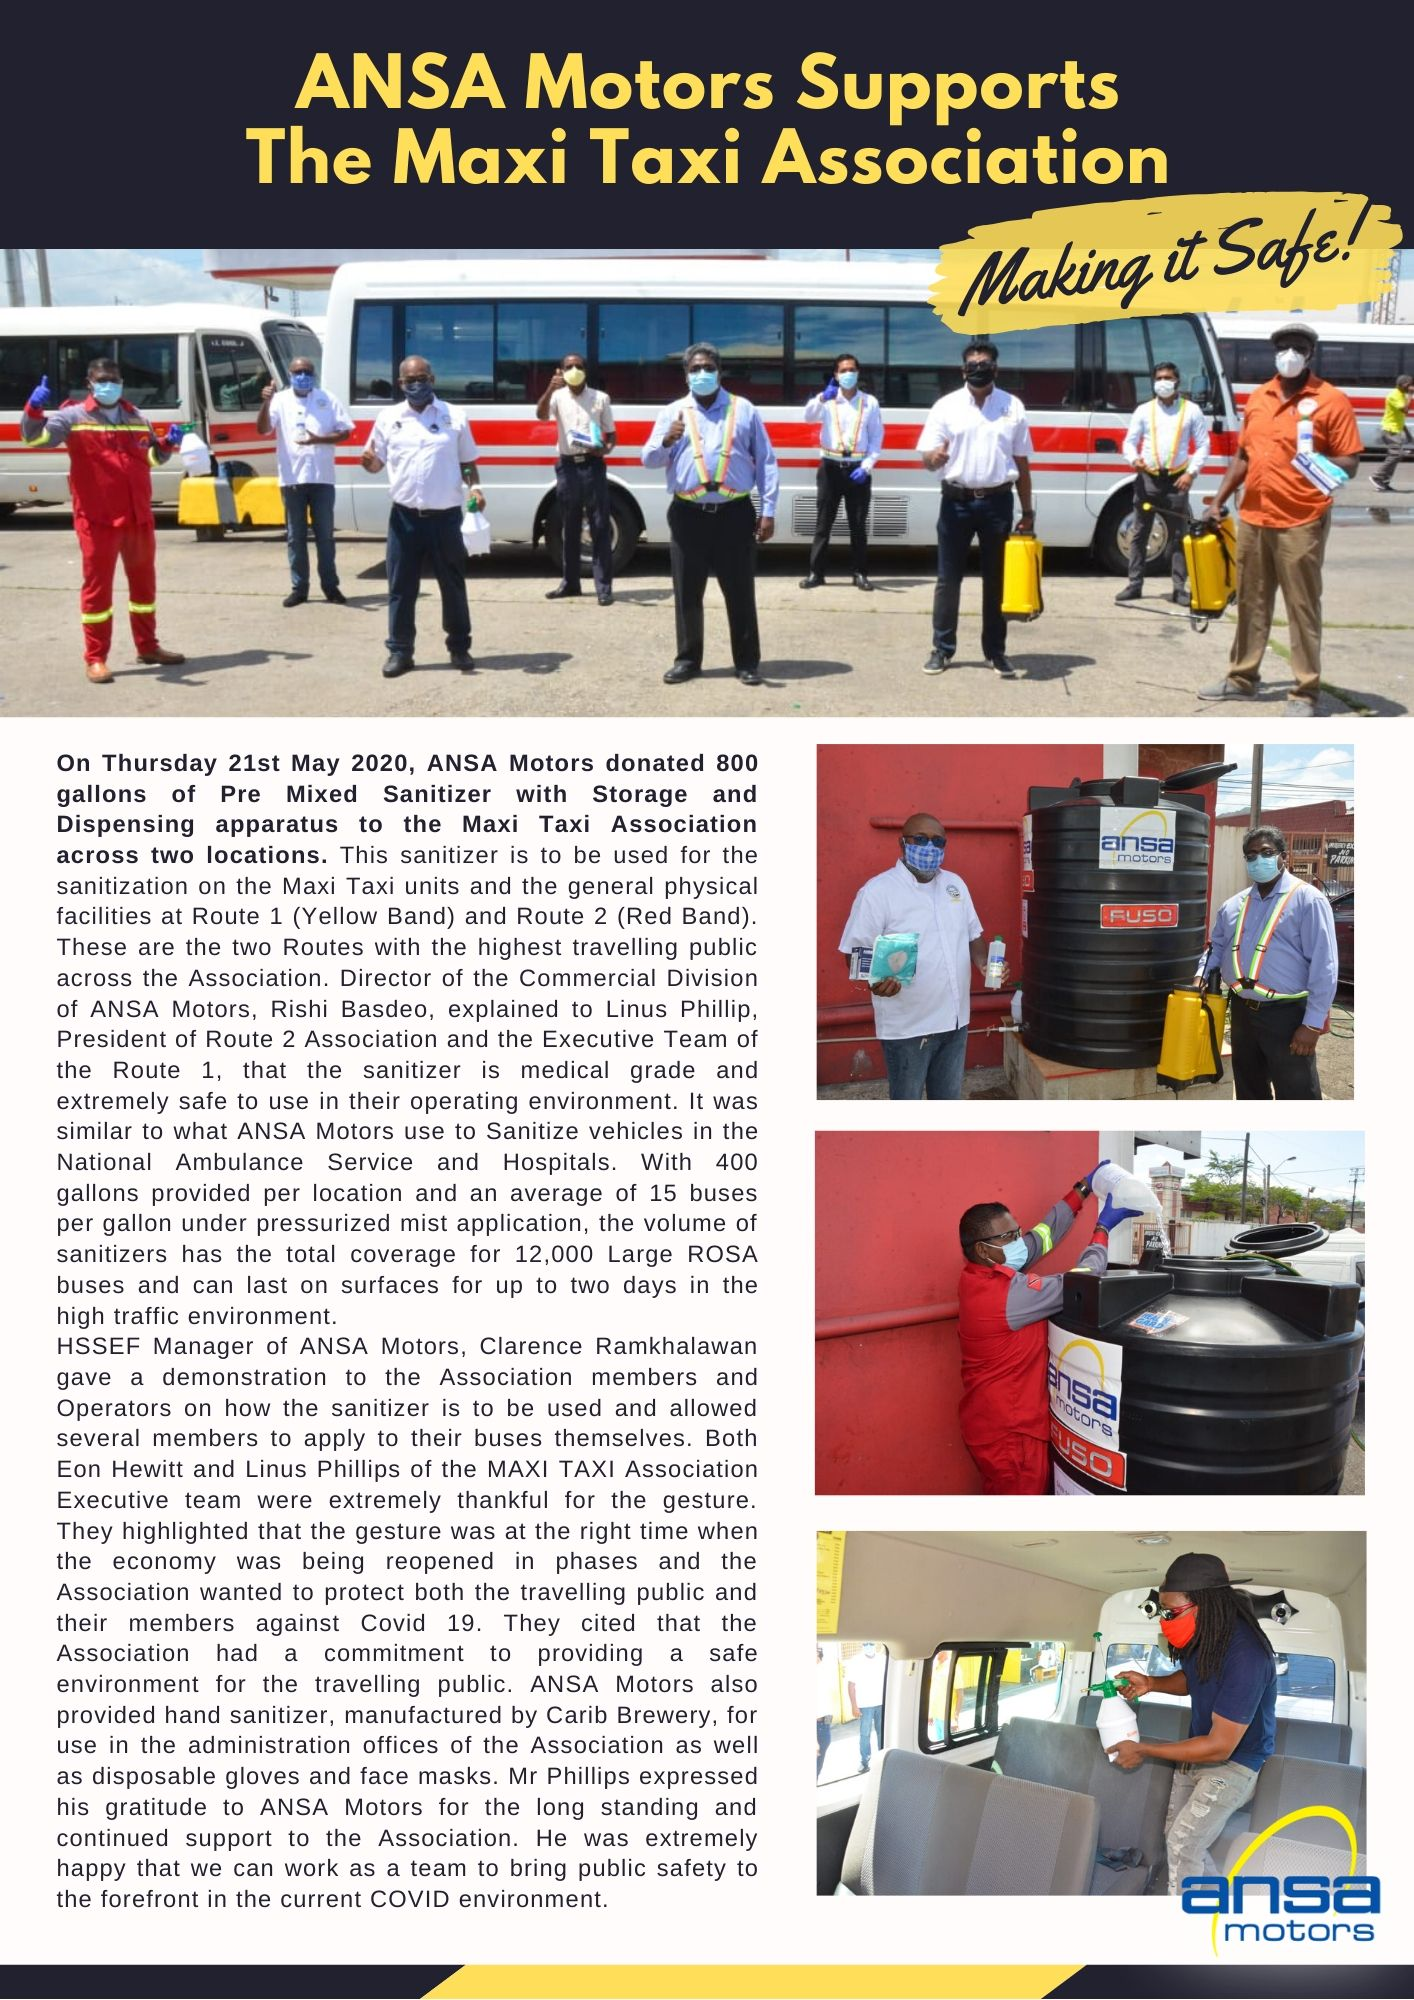 ANSA Motors Supports the Maxi Taxi Association